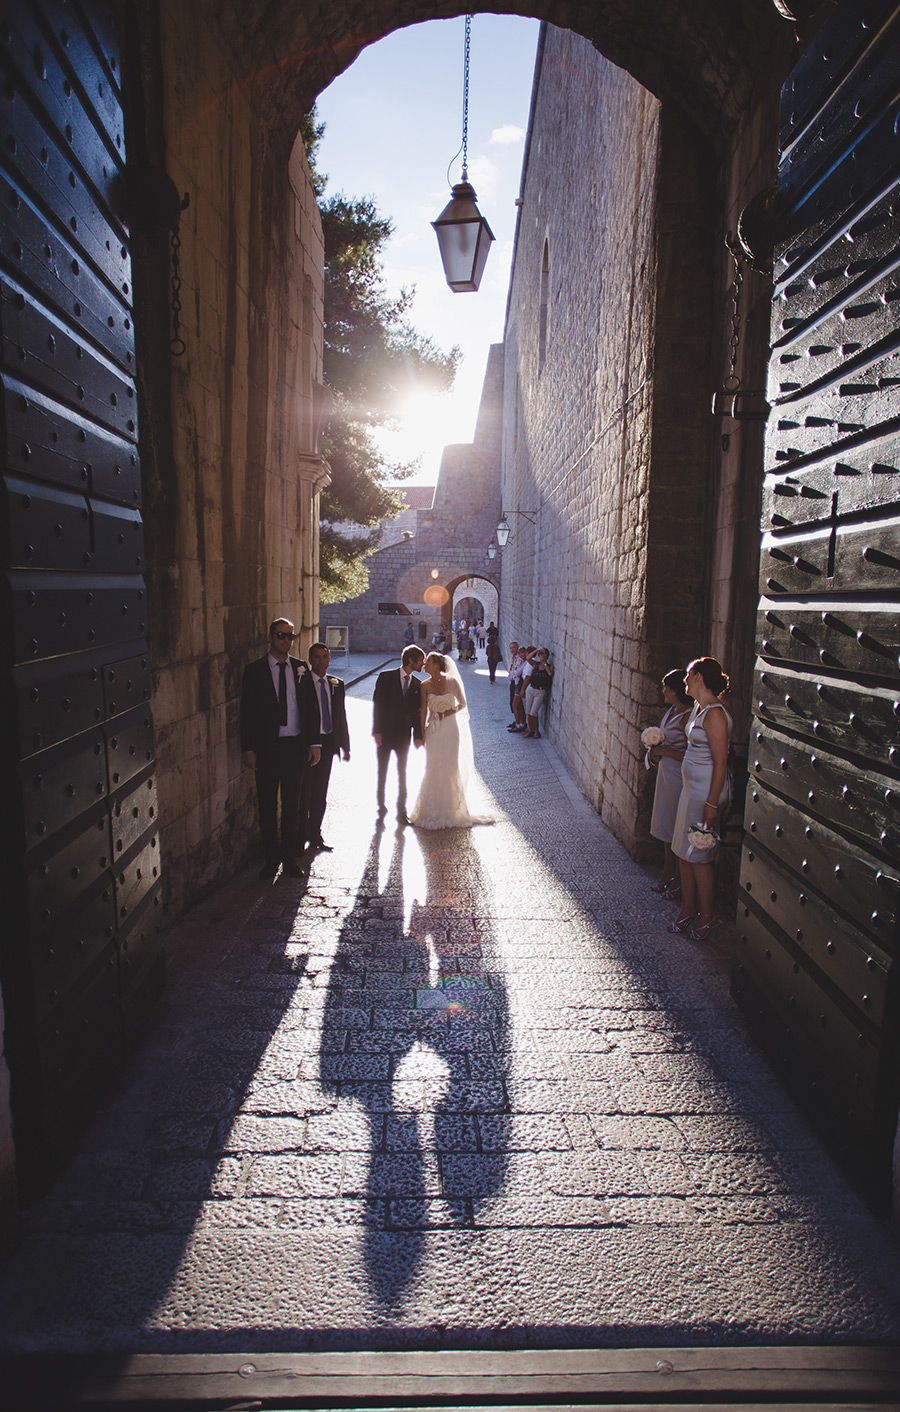 One of a set of images taken at this chic destination Wedding of Jenna & Nick. The stylish old town of Dubrovnik, Croatia.  The couple kiss in the sunset.  Photography by Matt Porteous